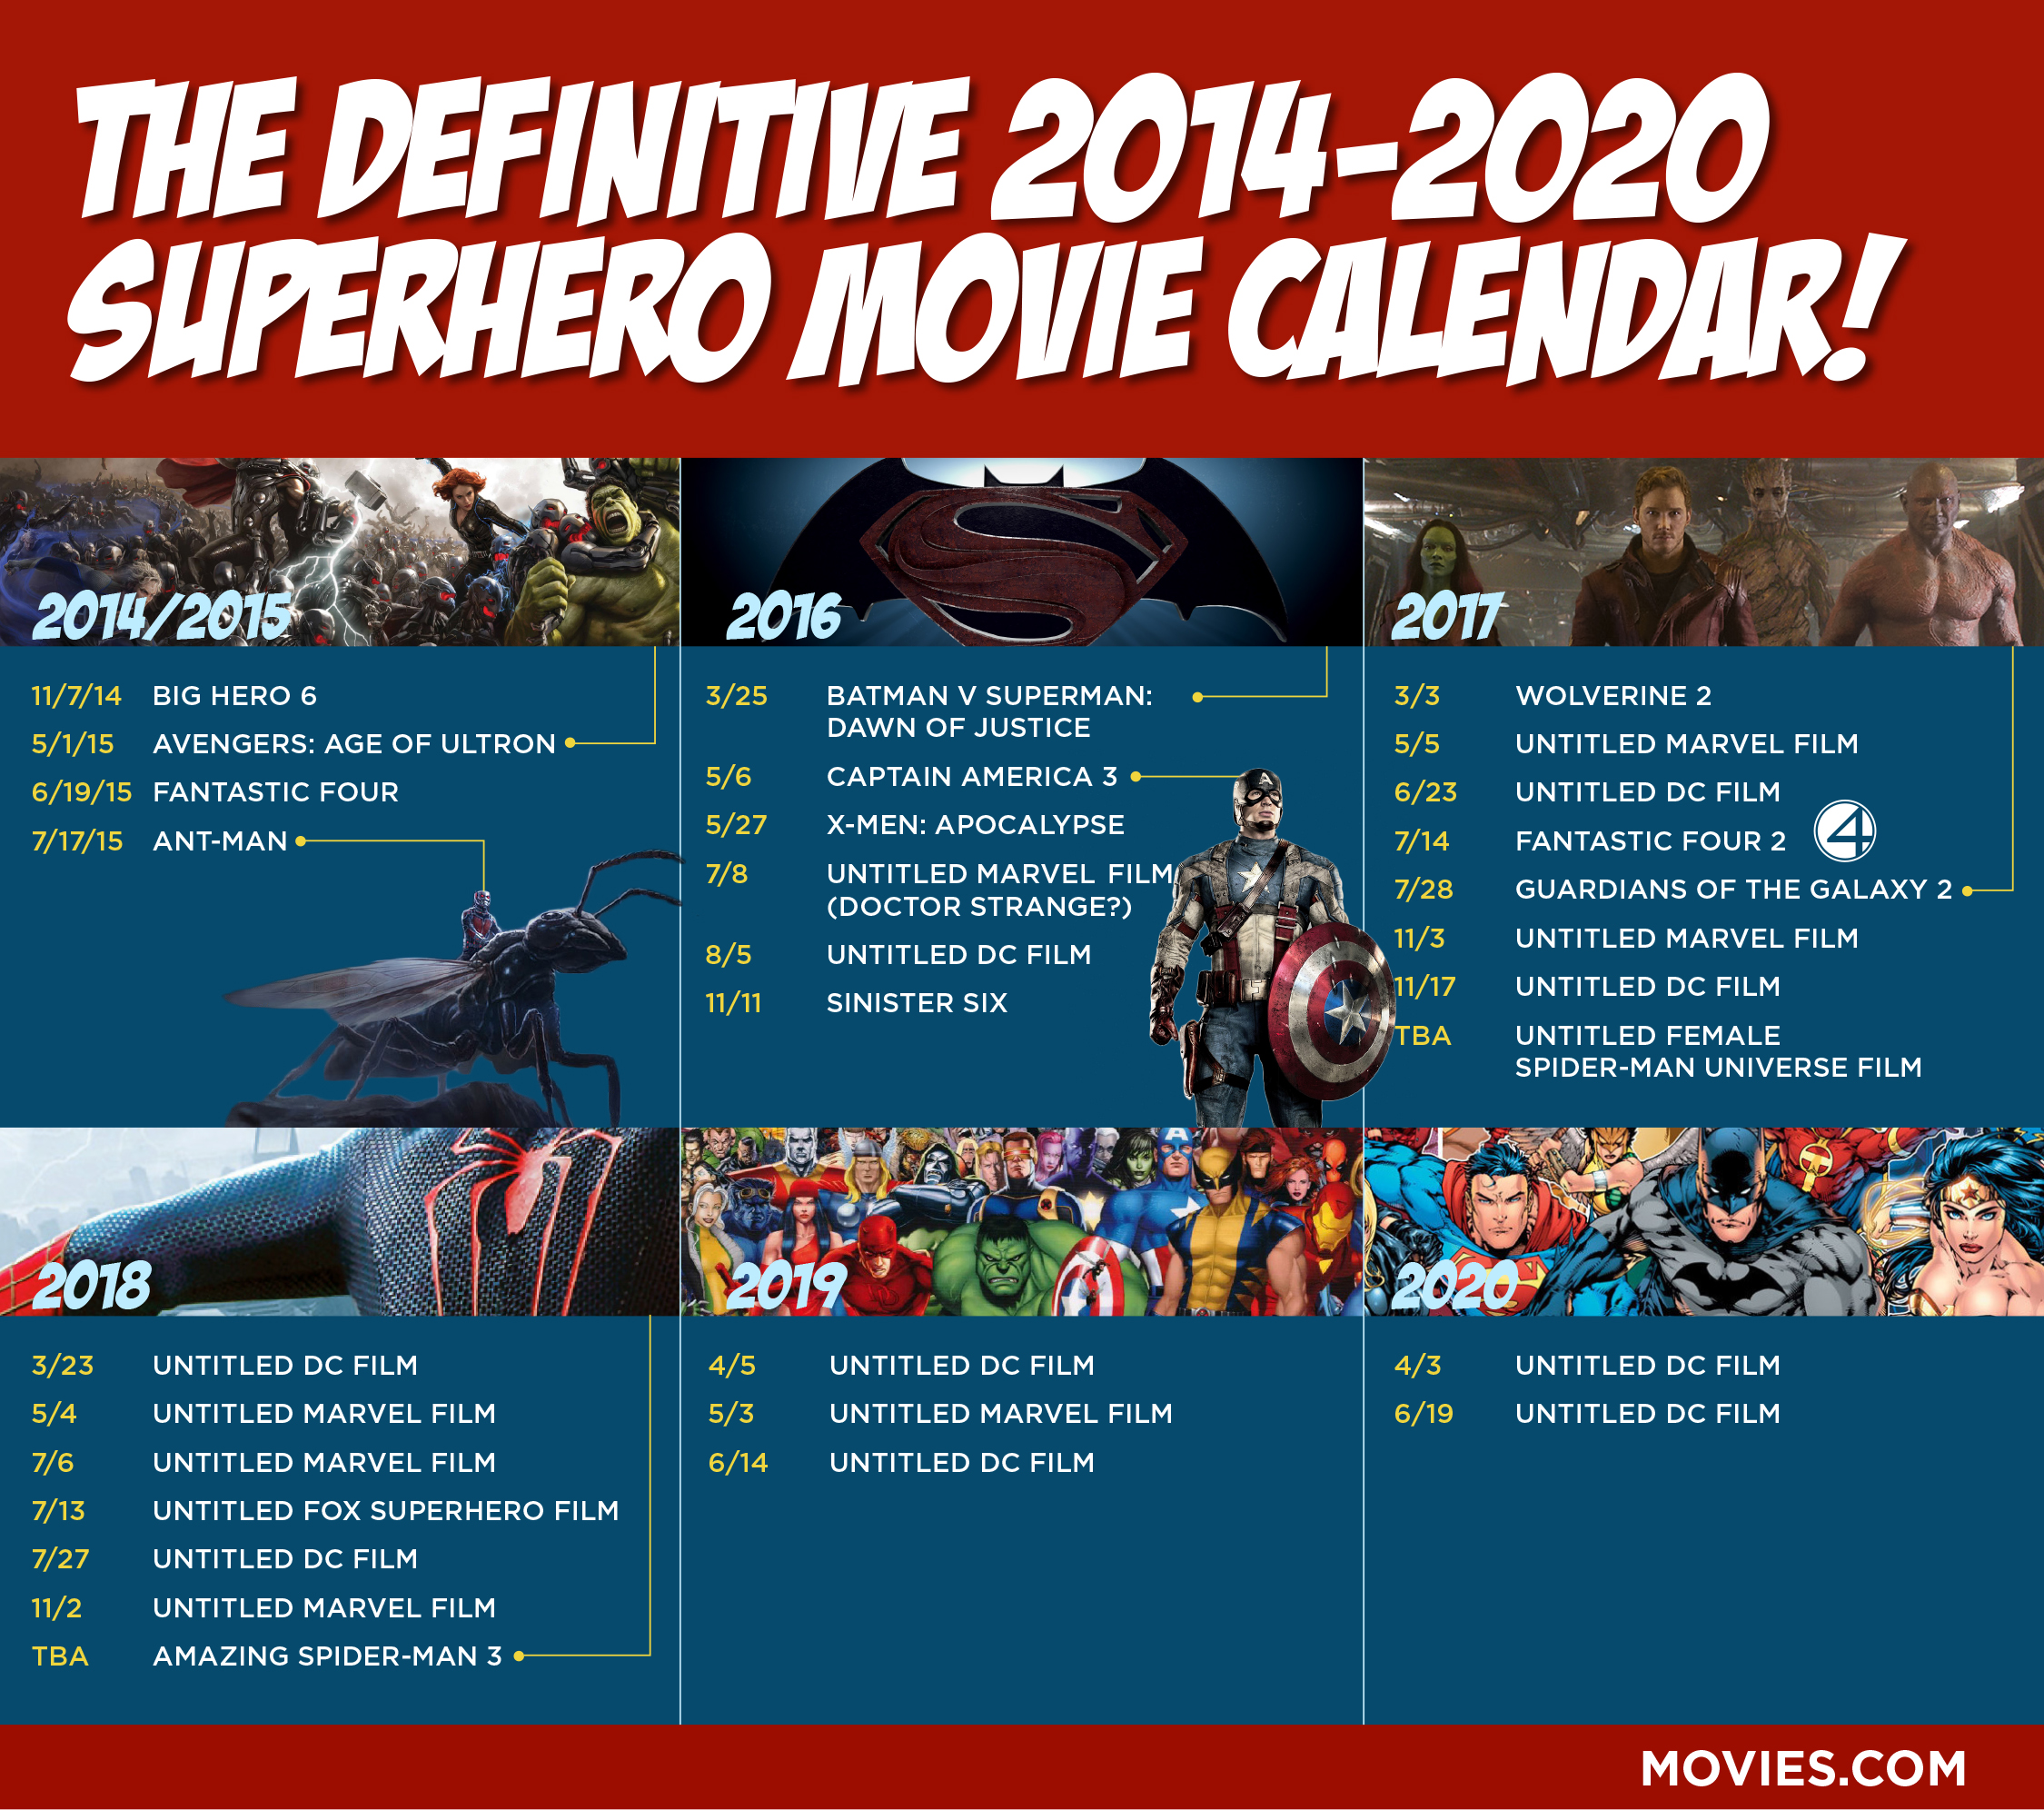 2014 & 2020 Calendar Definitive 2014 2020 Superhero Movie Calendar : movies